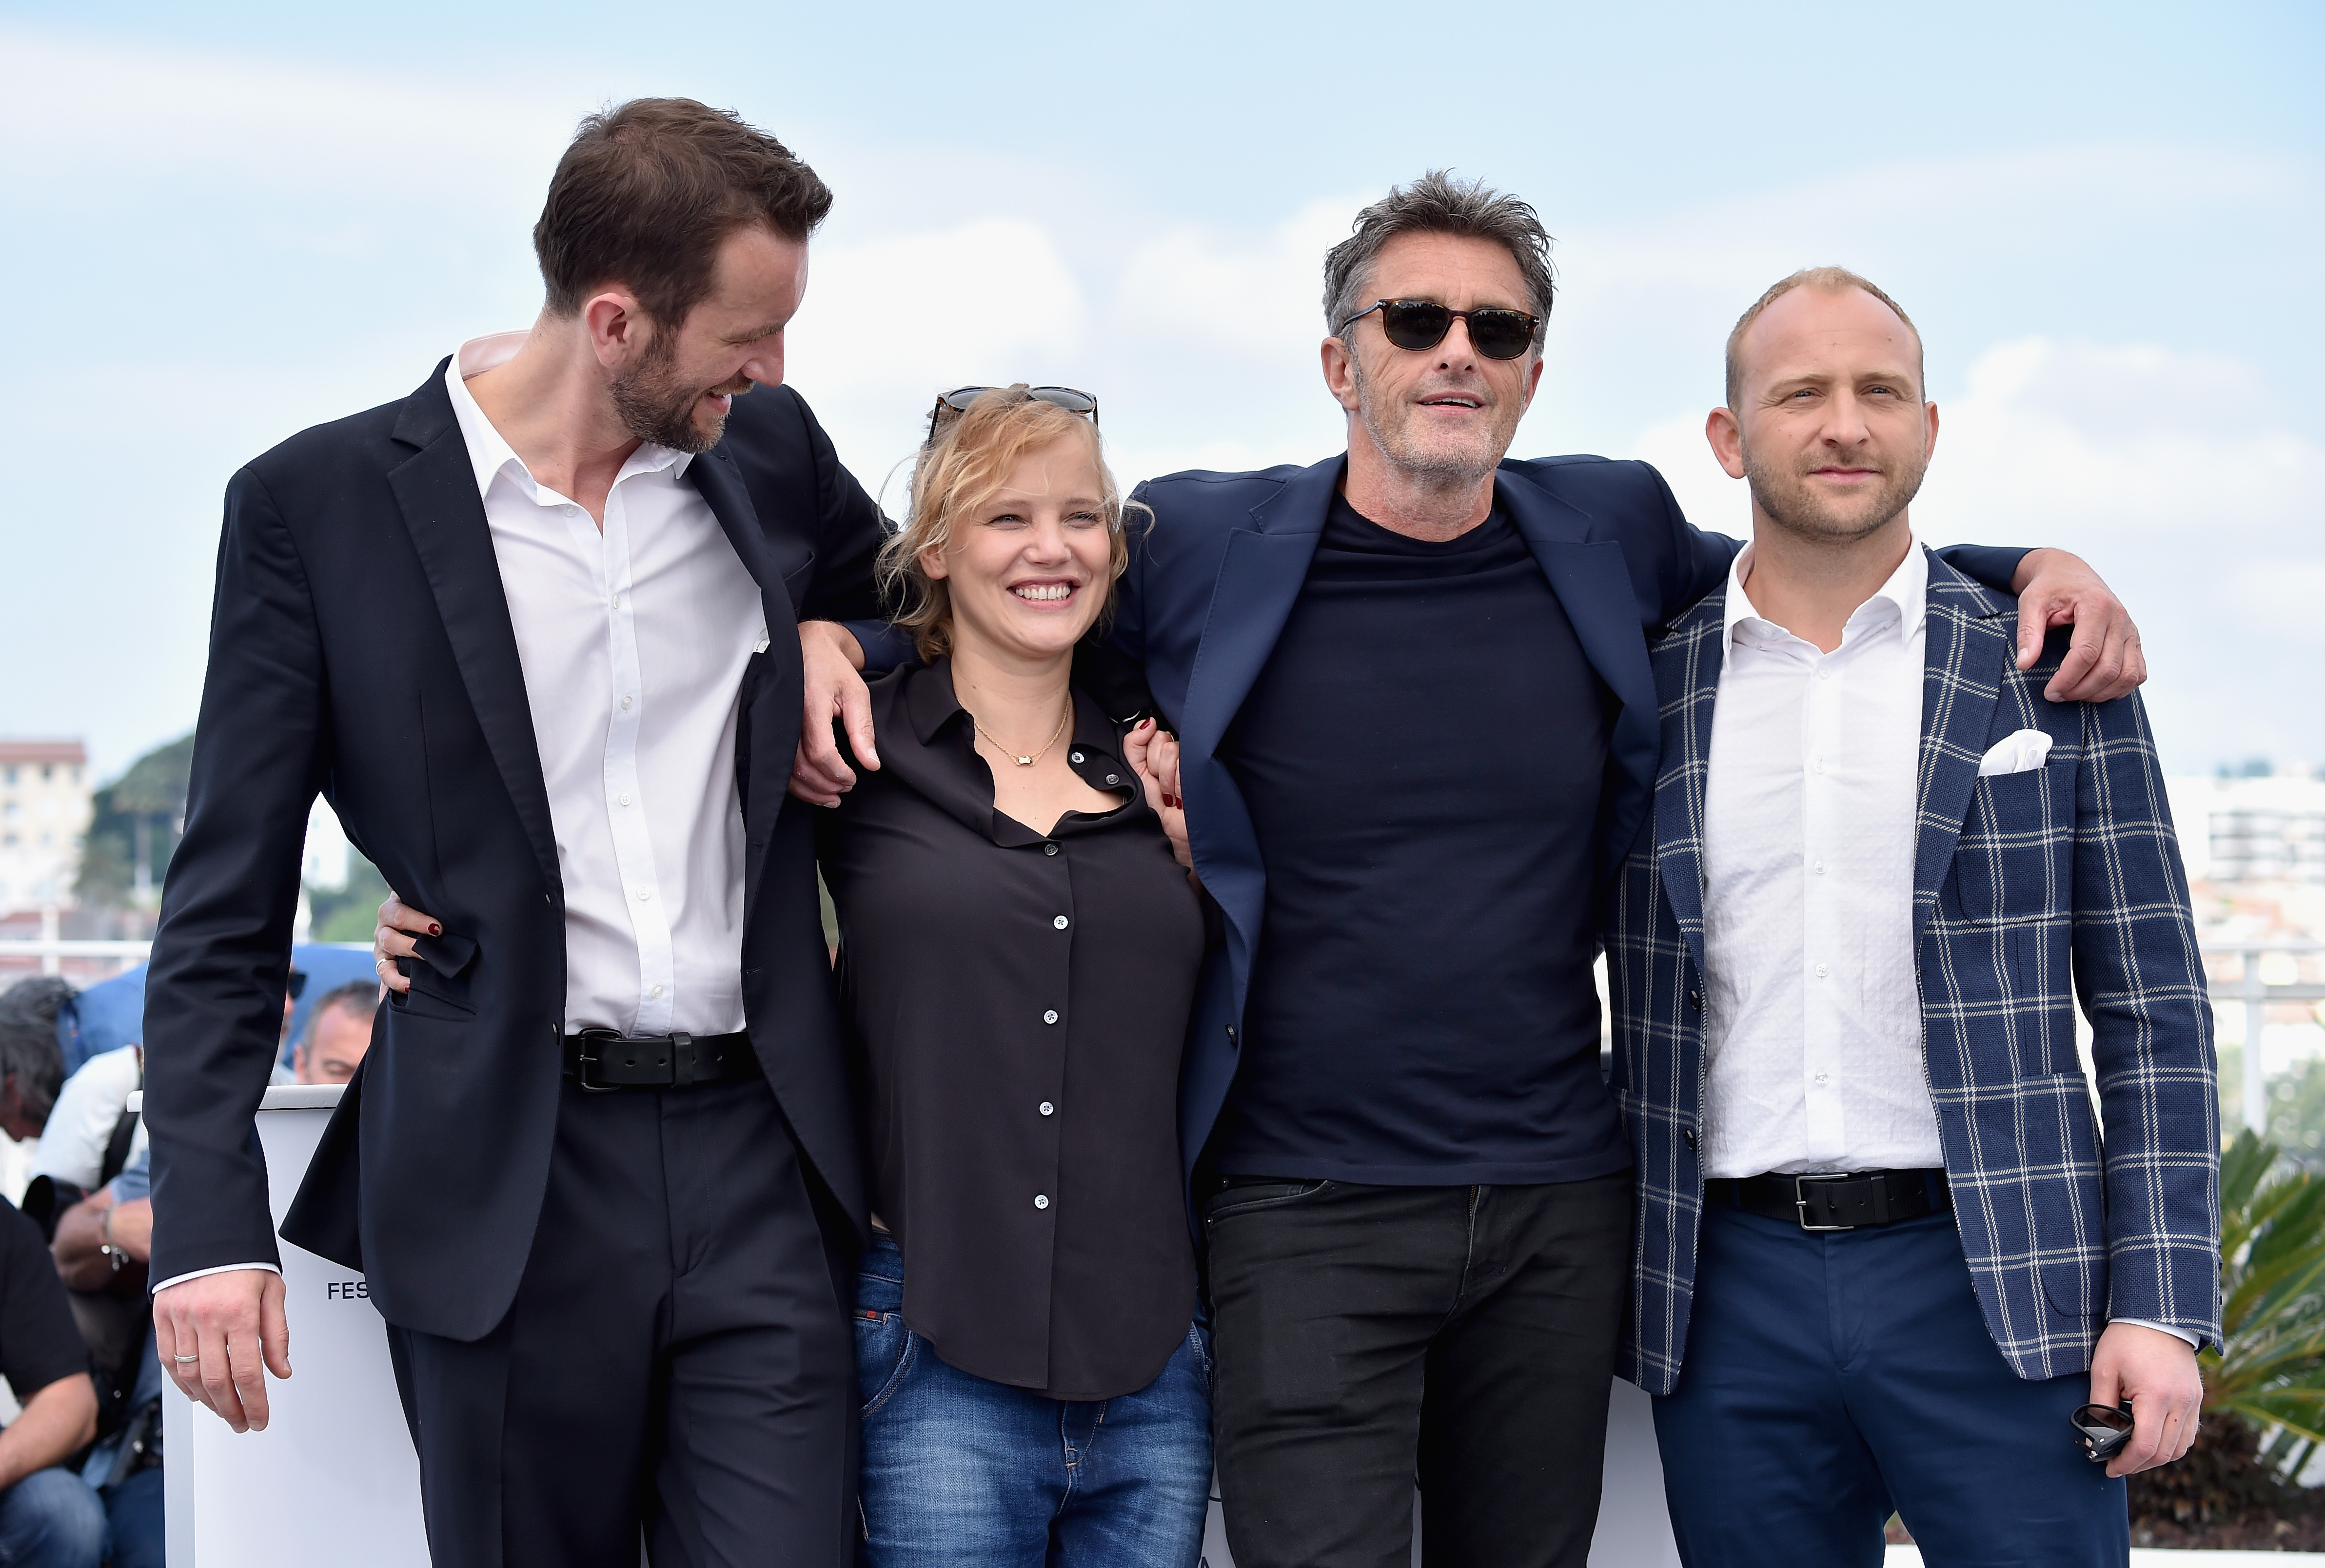 Actor Tomasz Kot, actress Joanna Kulig, director Pawel Pawlikowsk and actor Borys Szyc at the 71st annual Cannes Film Festival on May 11, 2018 in Cannes, France.